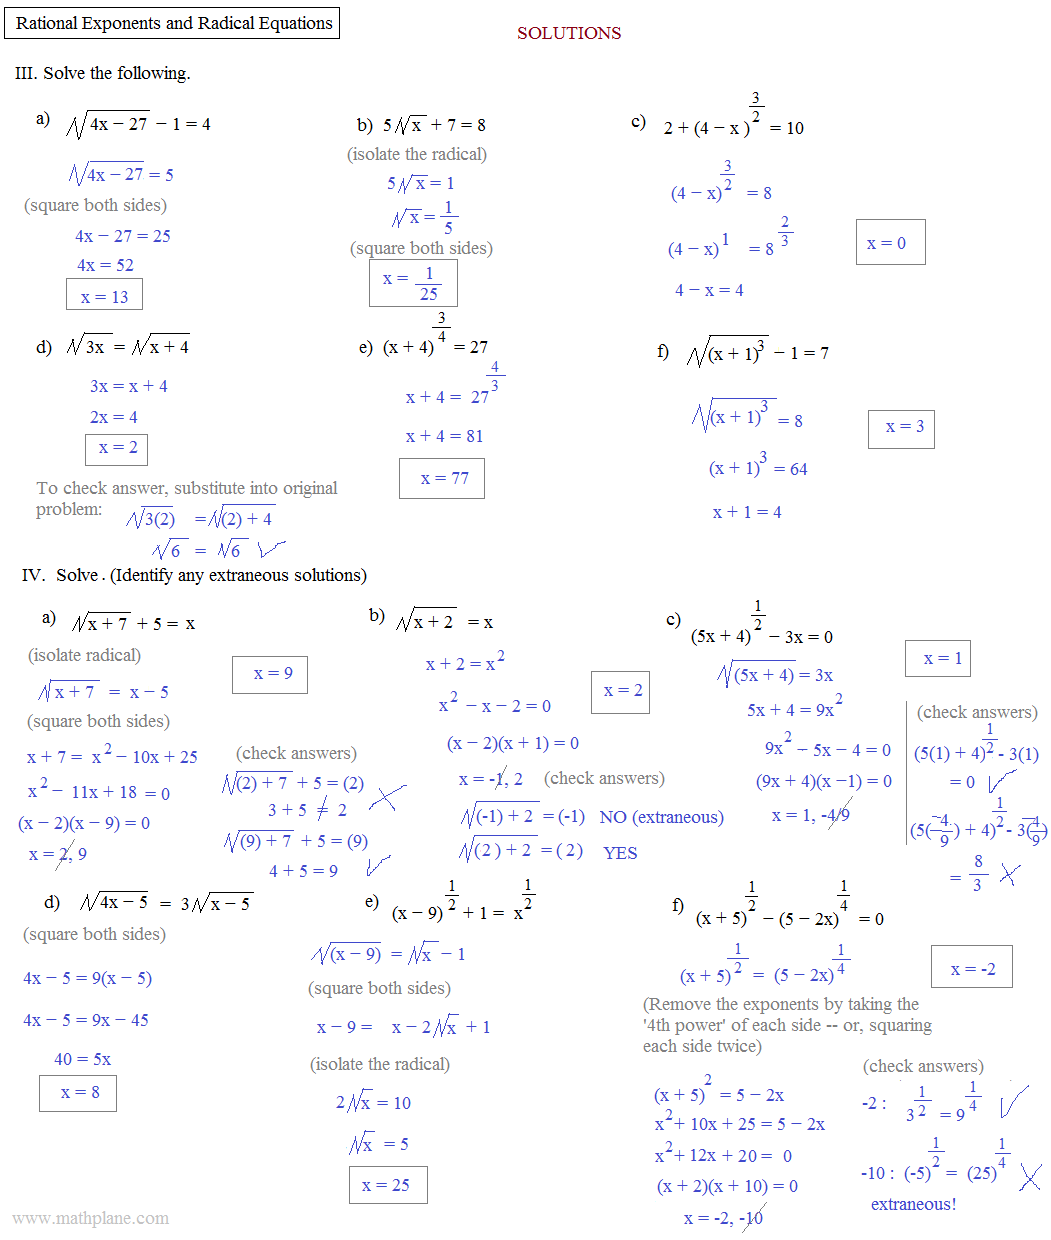 worksheet Linear Functions Worksheet linear functions worksheet algebra 2 abitlikethis answers on rational exponents a 7 2